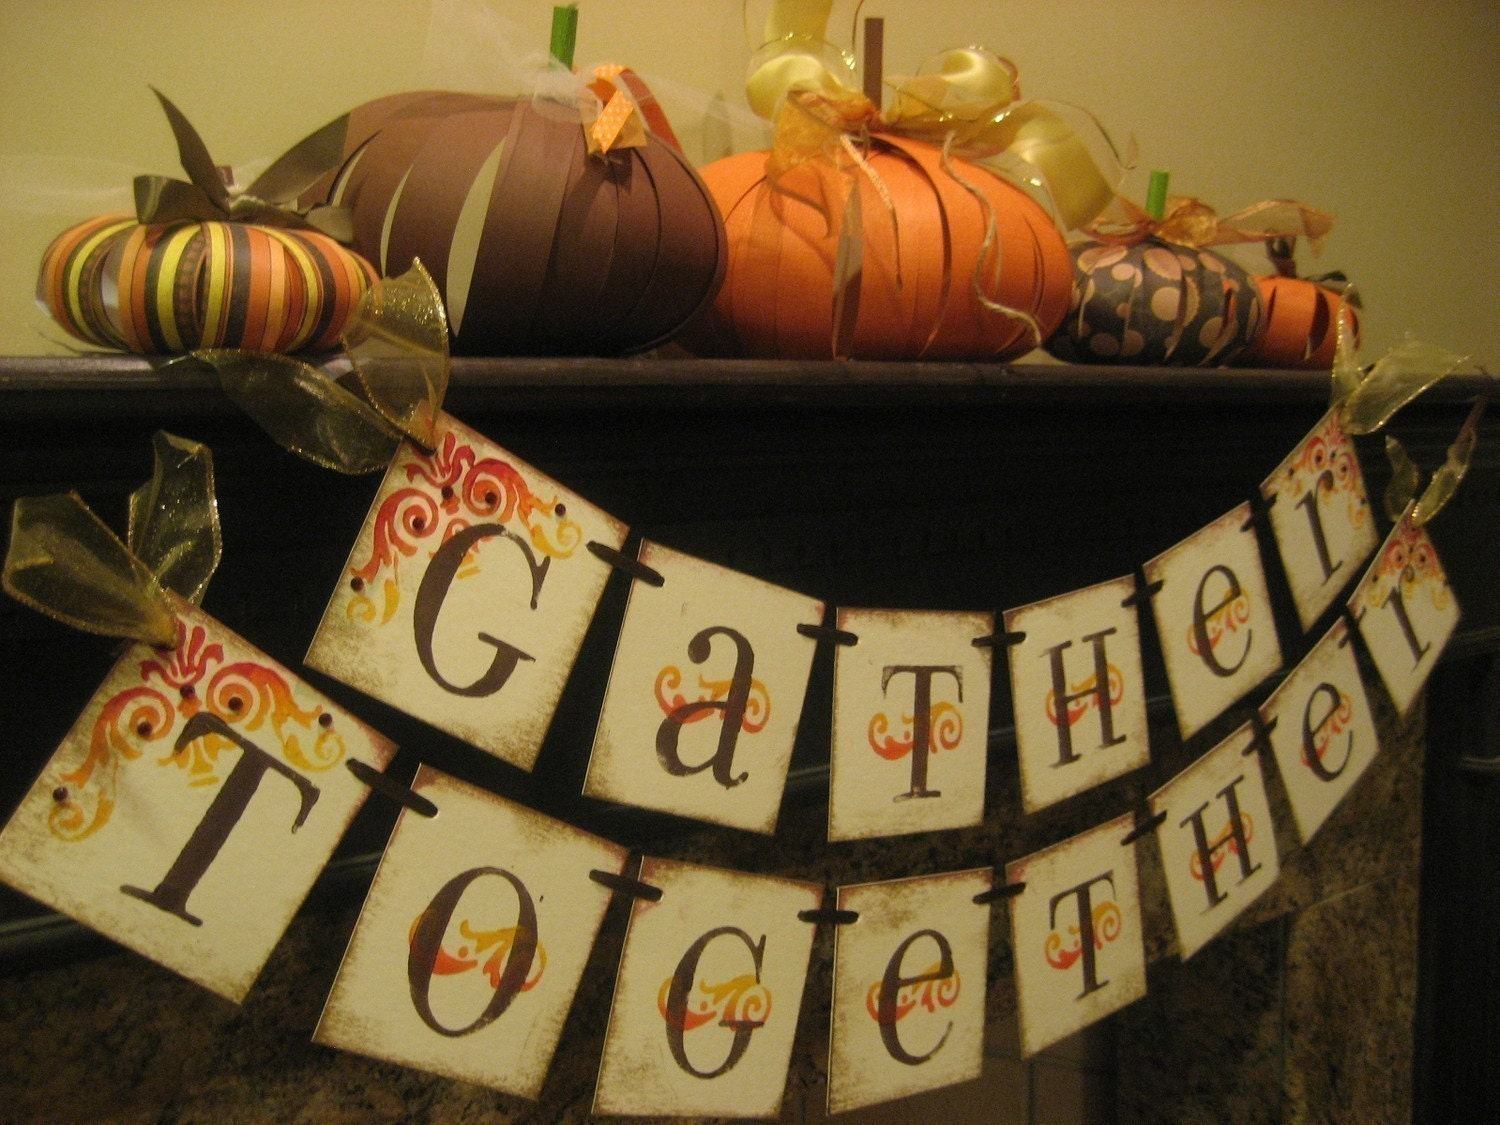 GATHER TOGETHER Autumn Banner